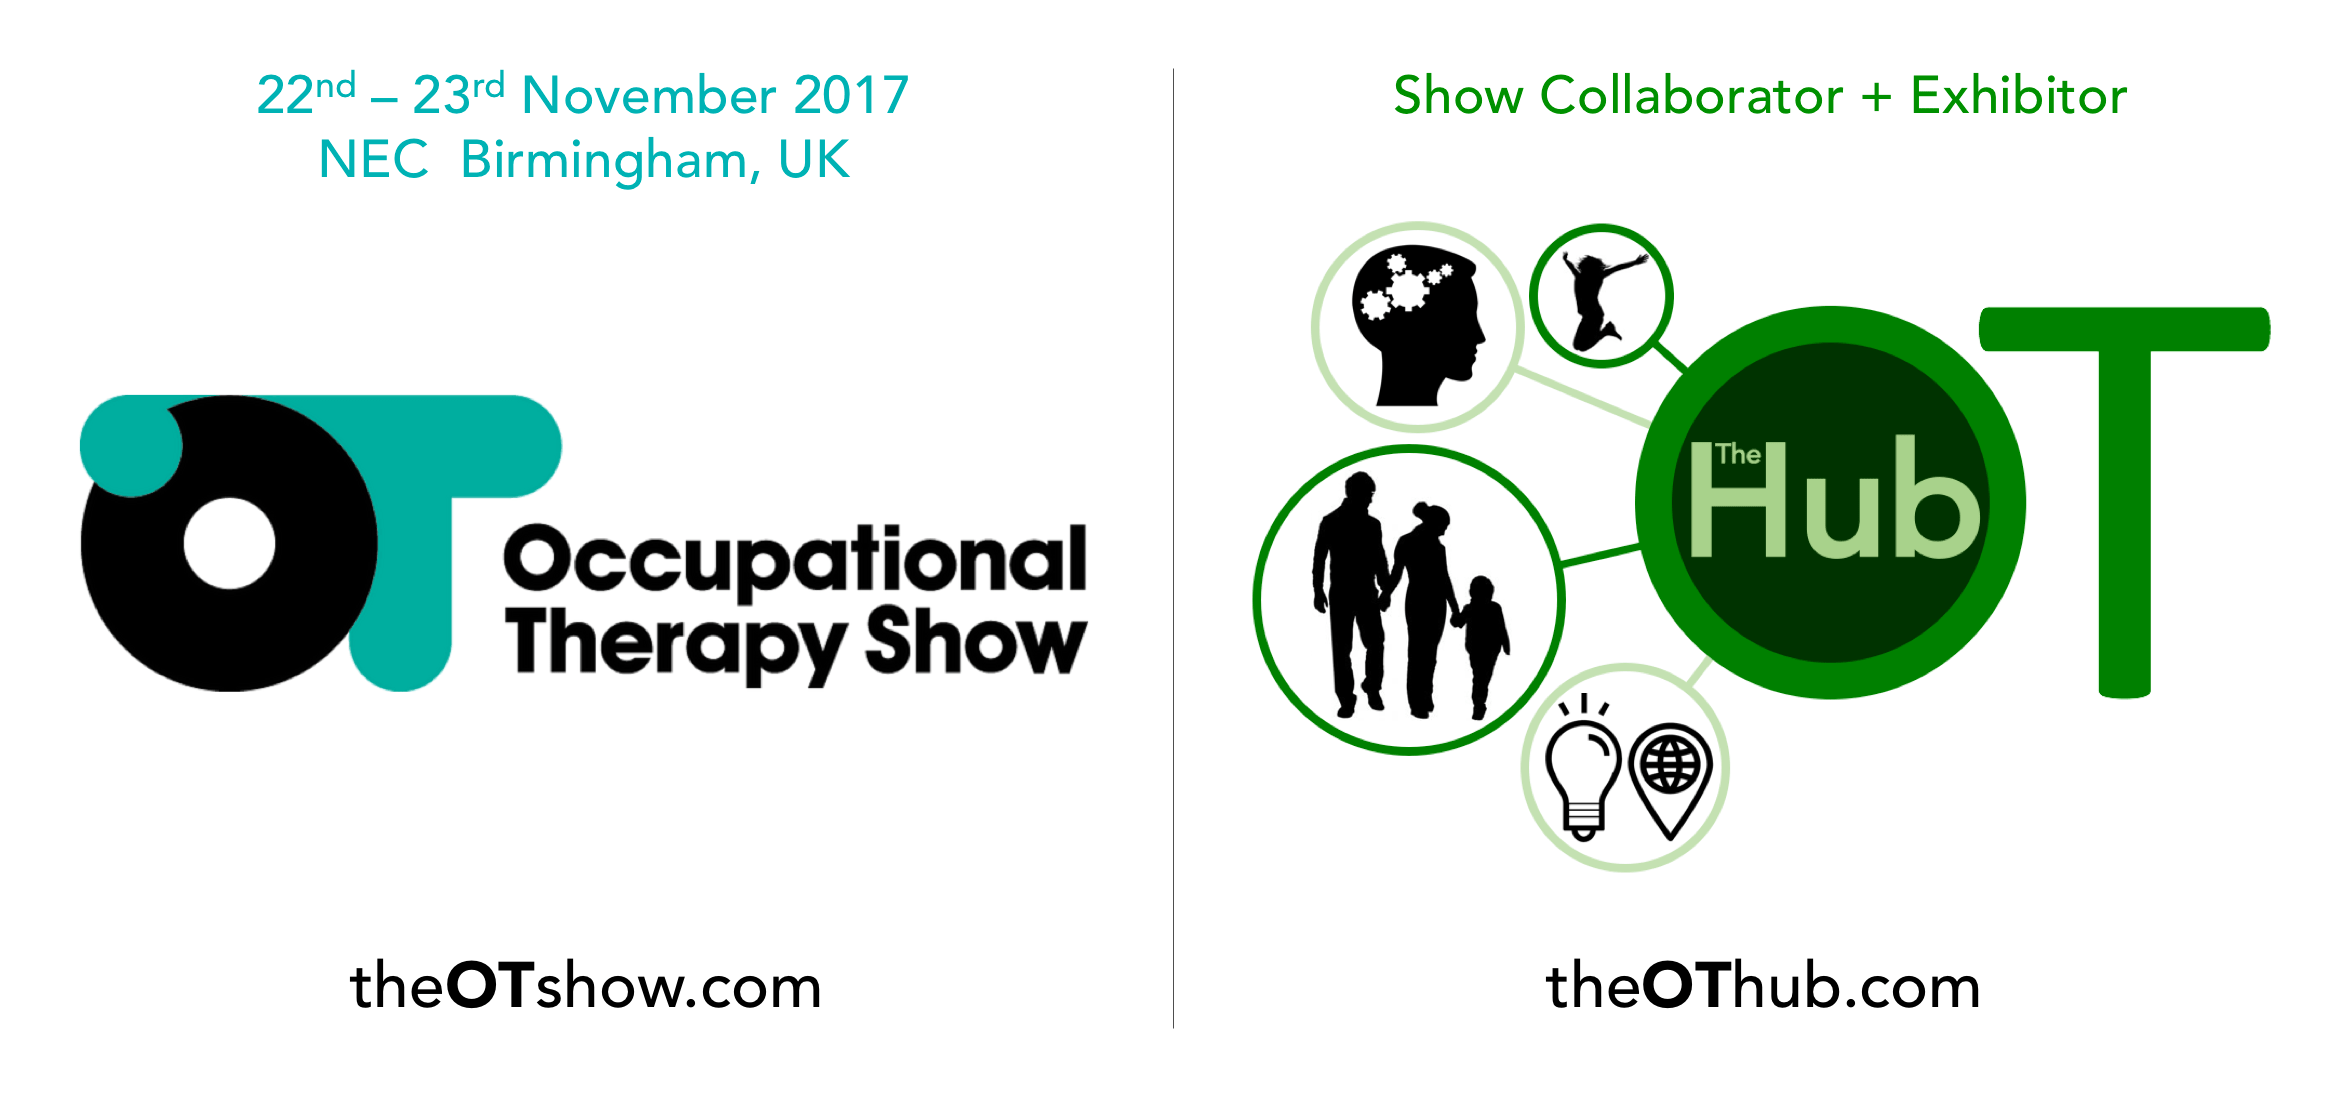 The Occupational Therapy Show